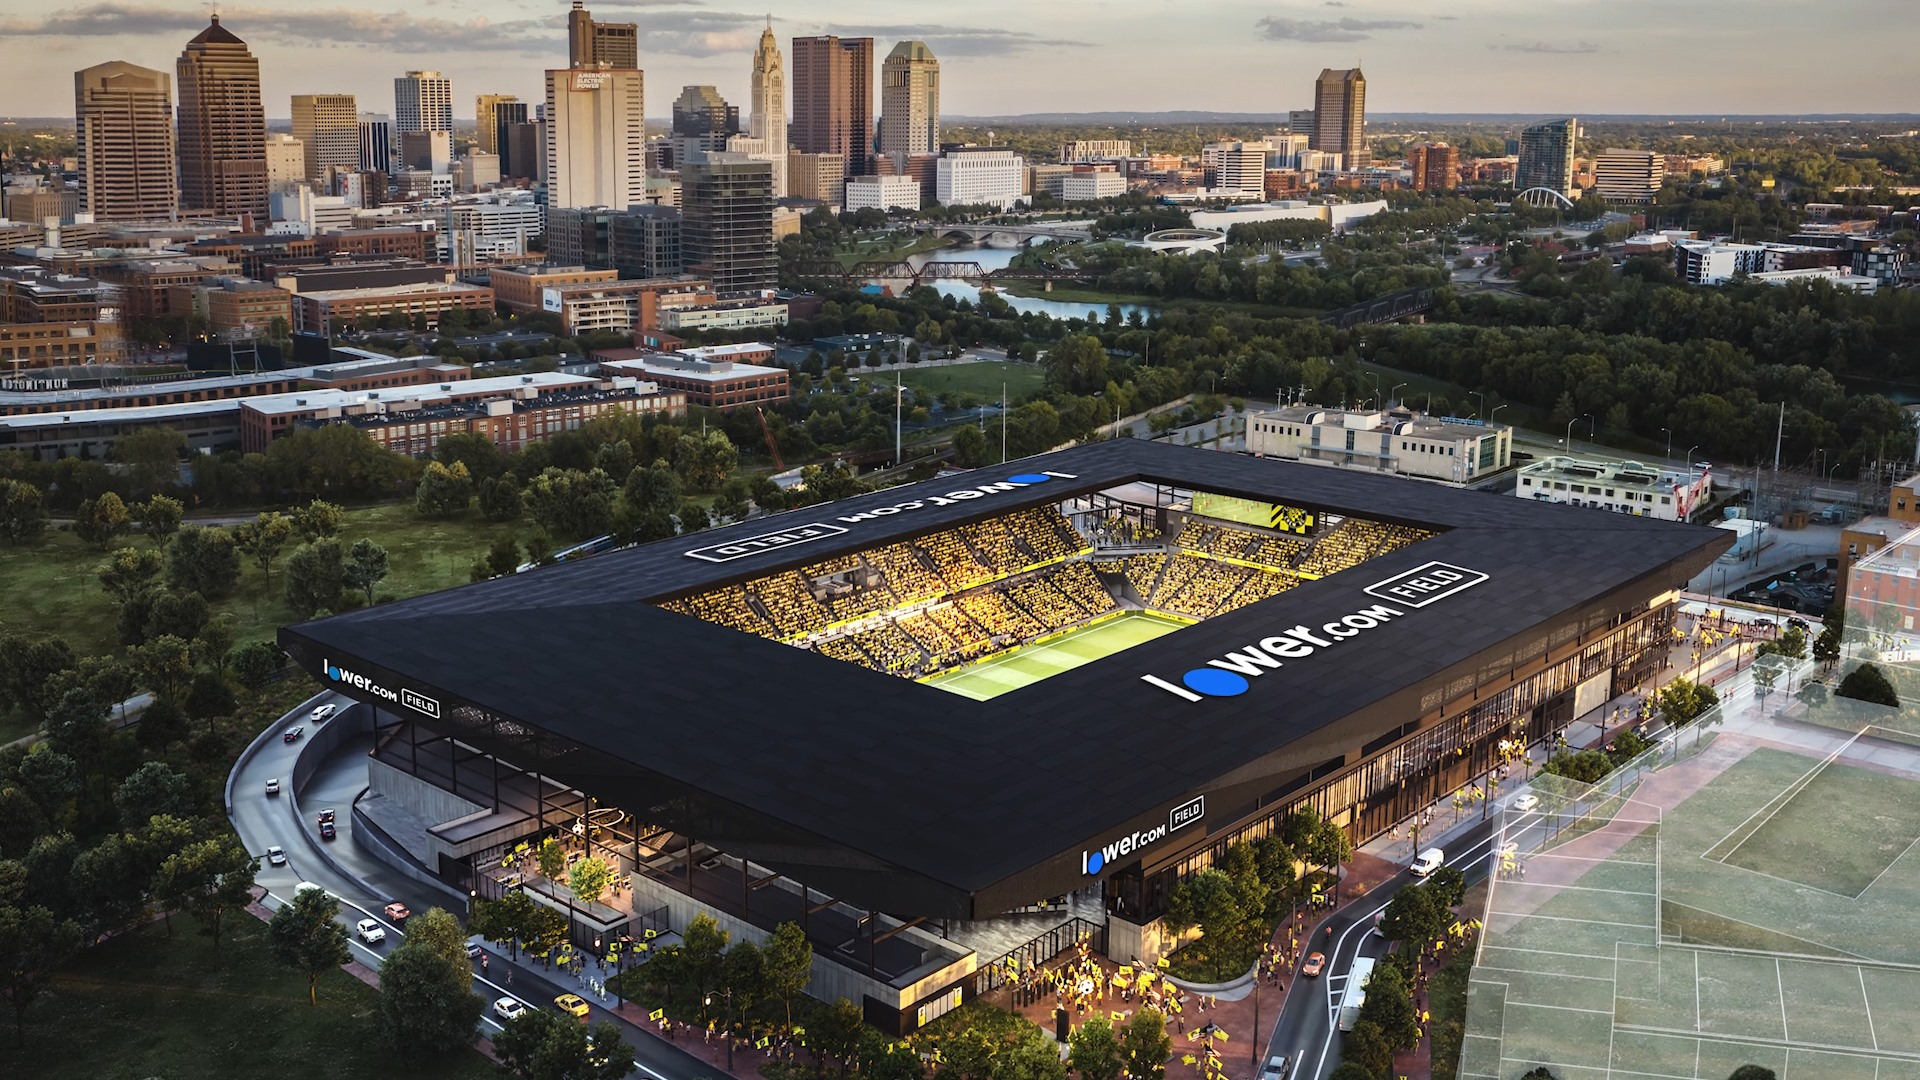 The new Lower.com Field rendering—home of the Columbus Crew.